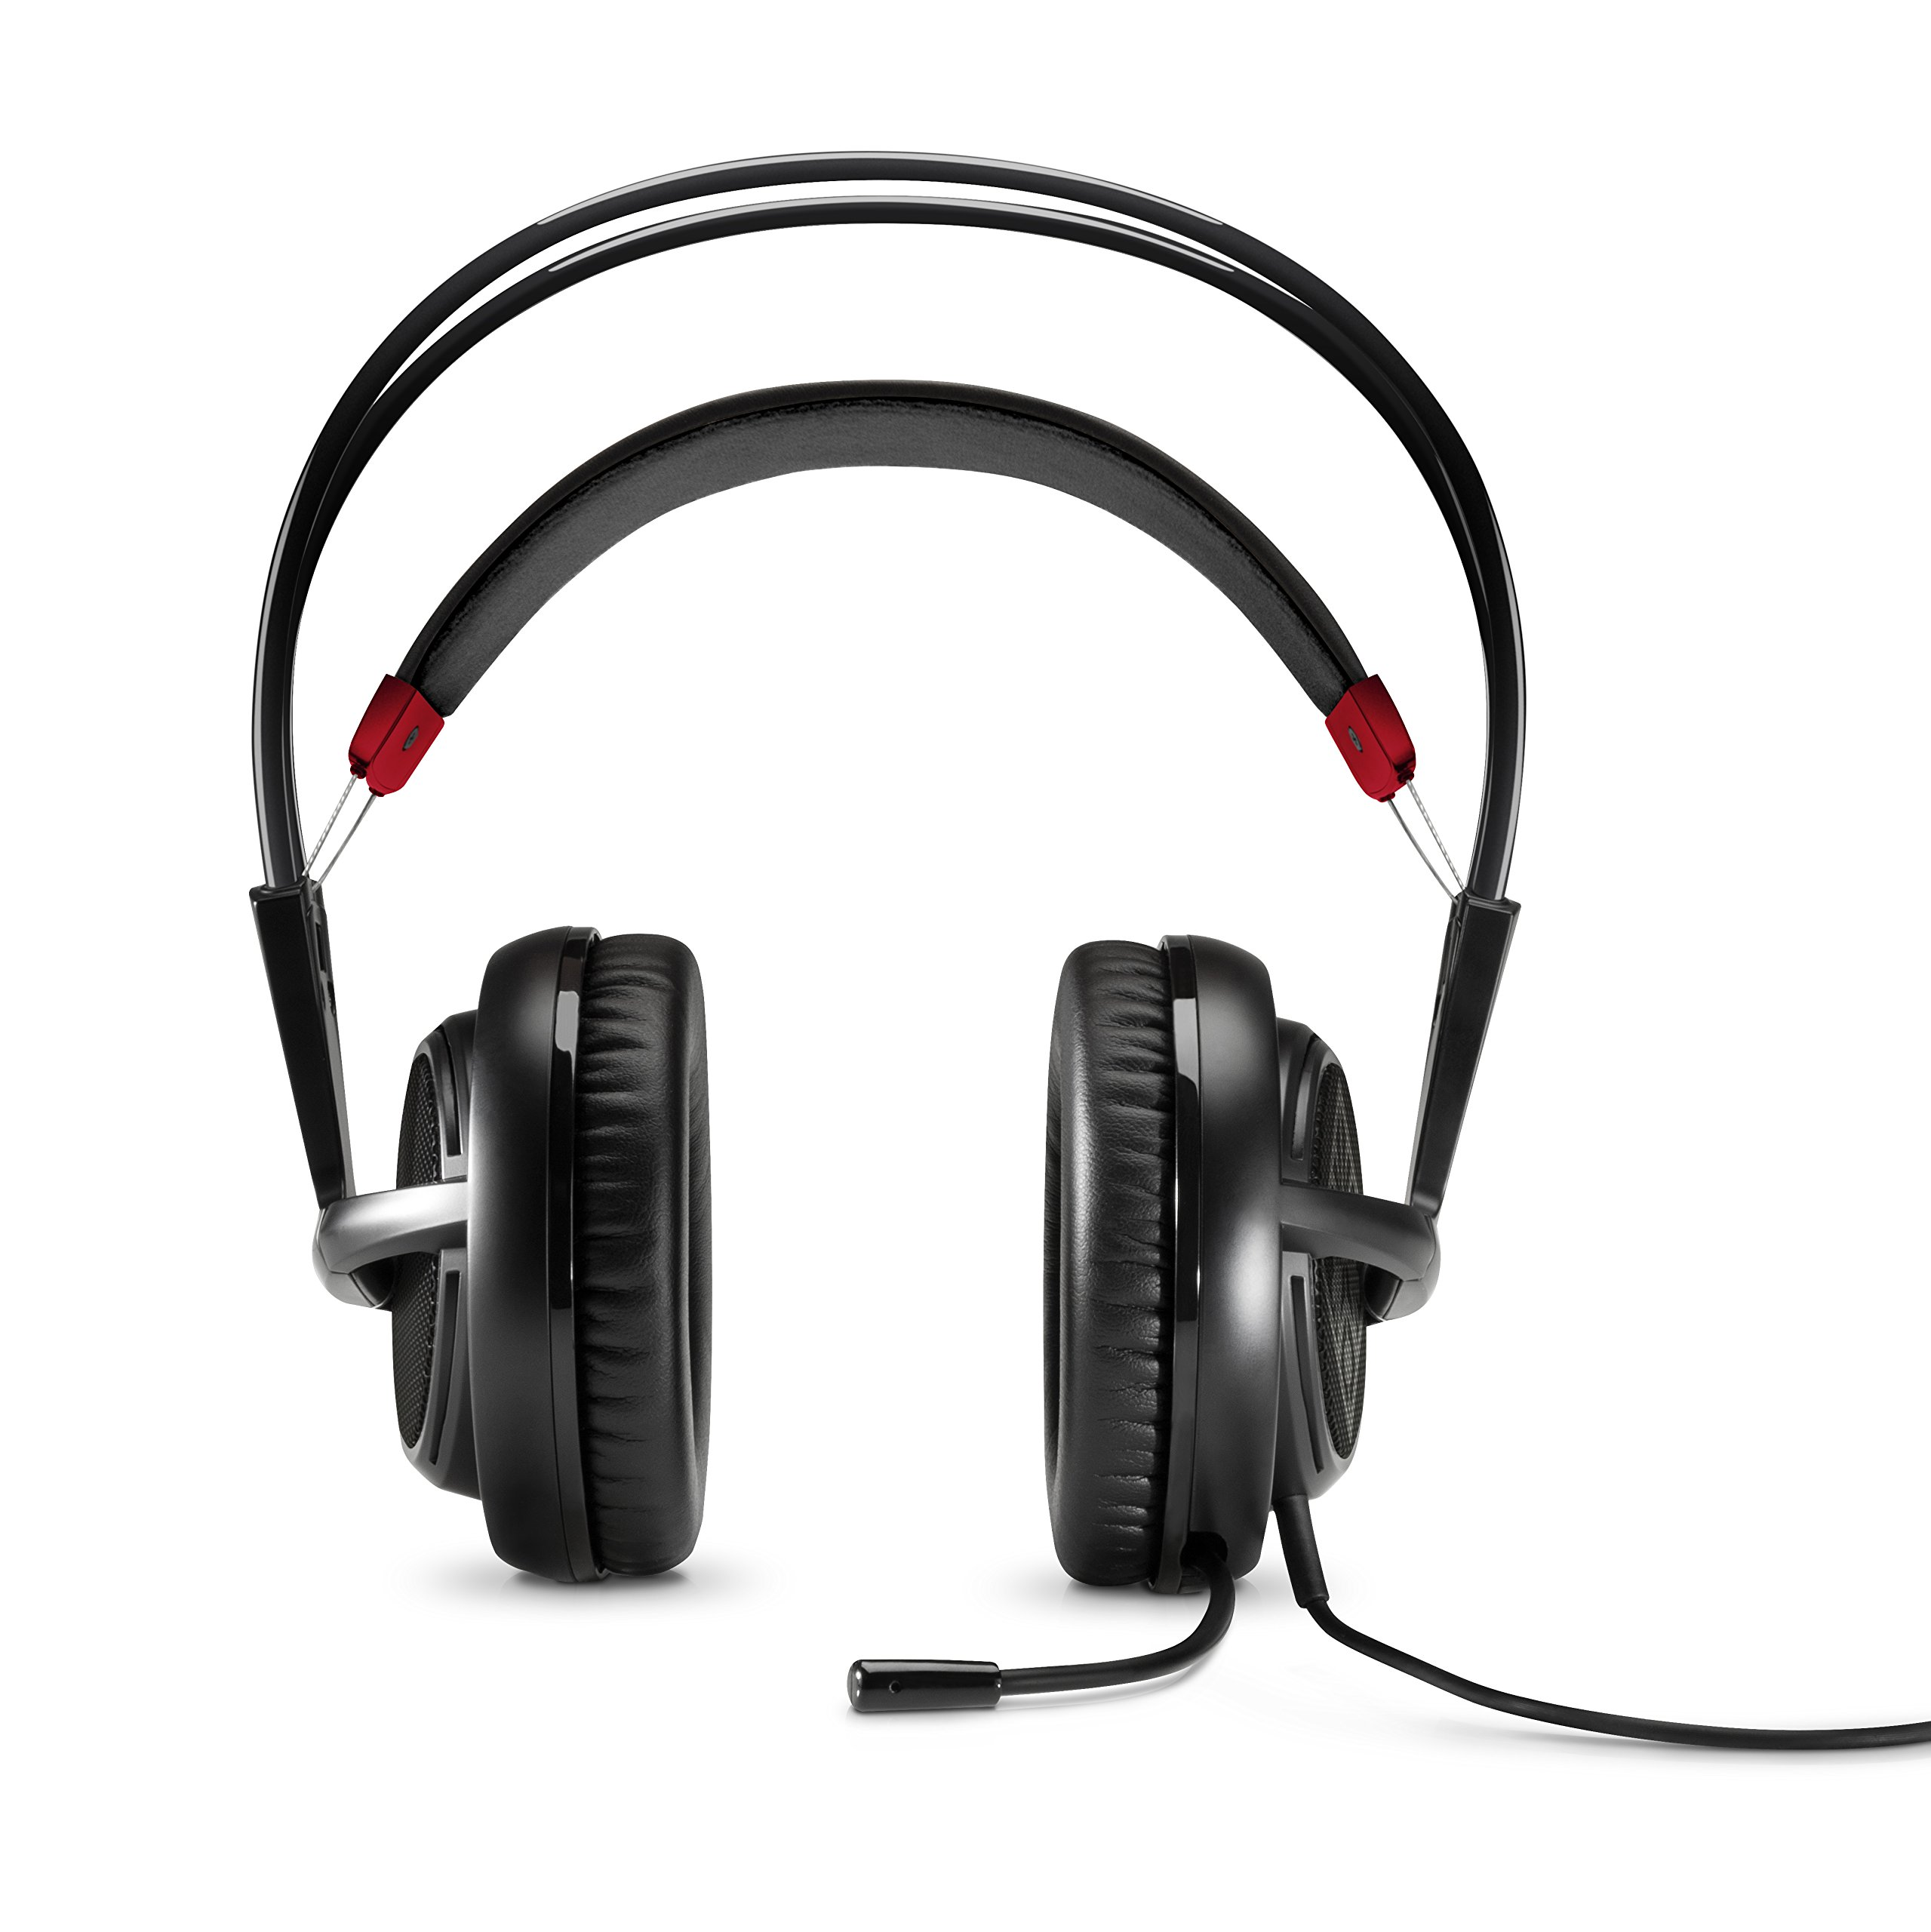 OMEN by HP Wired Gaming Headset with SteelSeries (Black) by HP (Image #4)